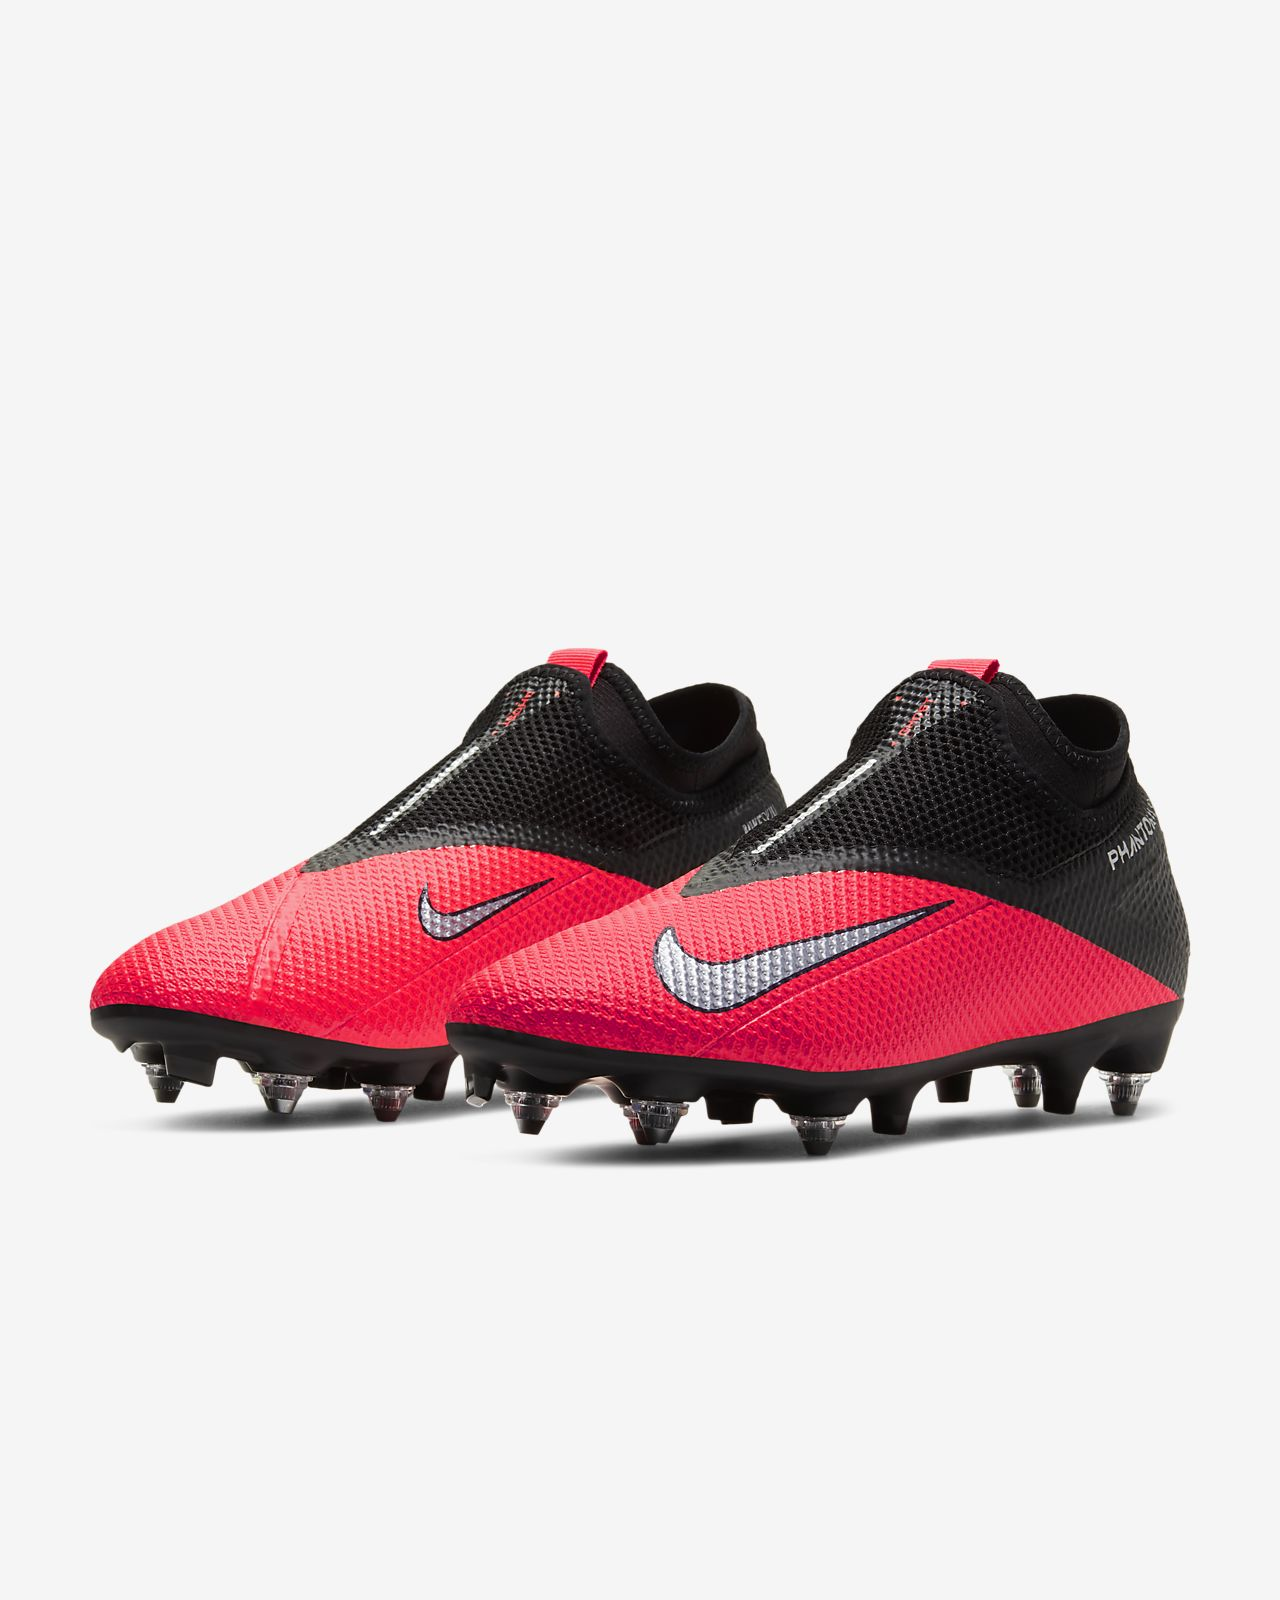 Chaussure de football à crampons pour terrain gras Nike Phantom Vision 2 Academy Dynamic Fit SG PRO Anti Clog Traction